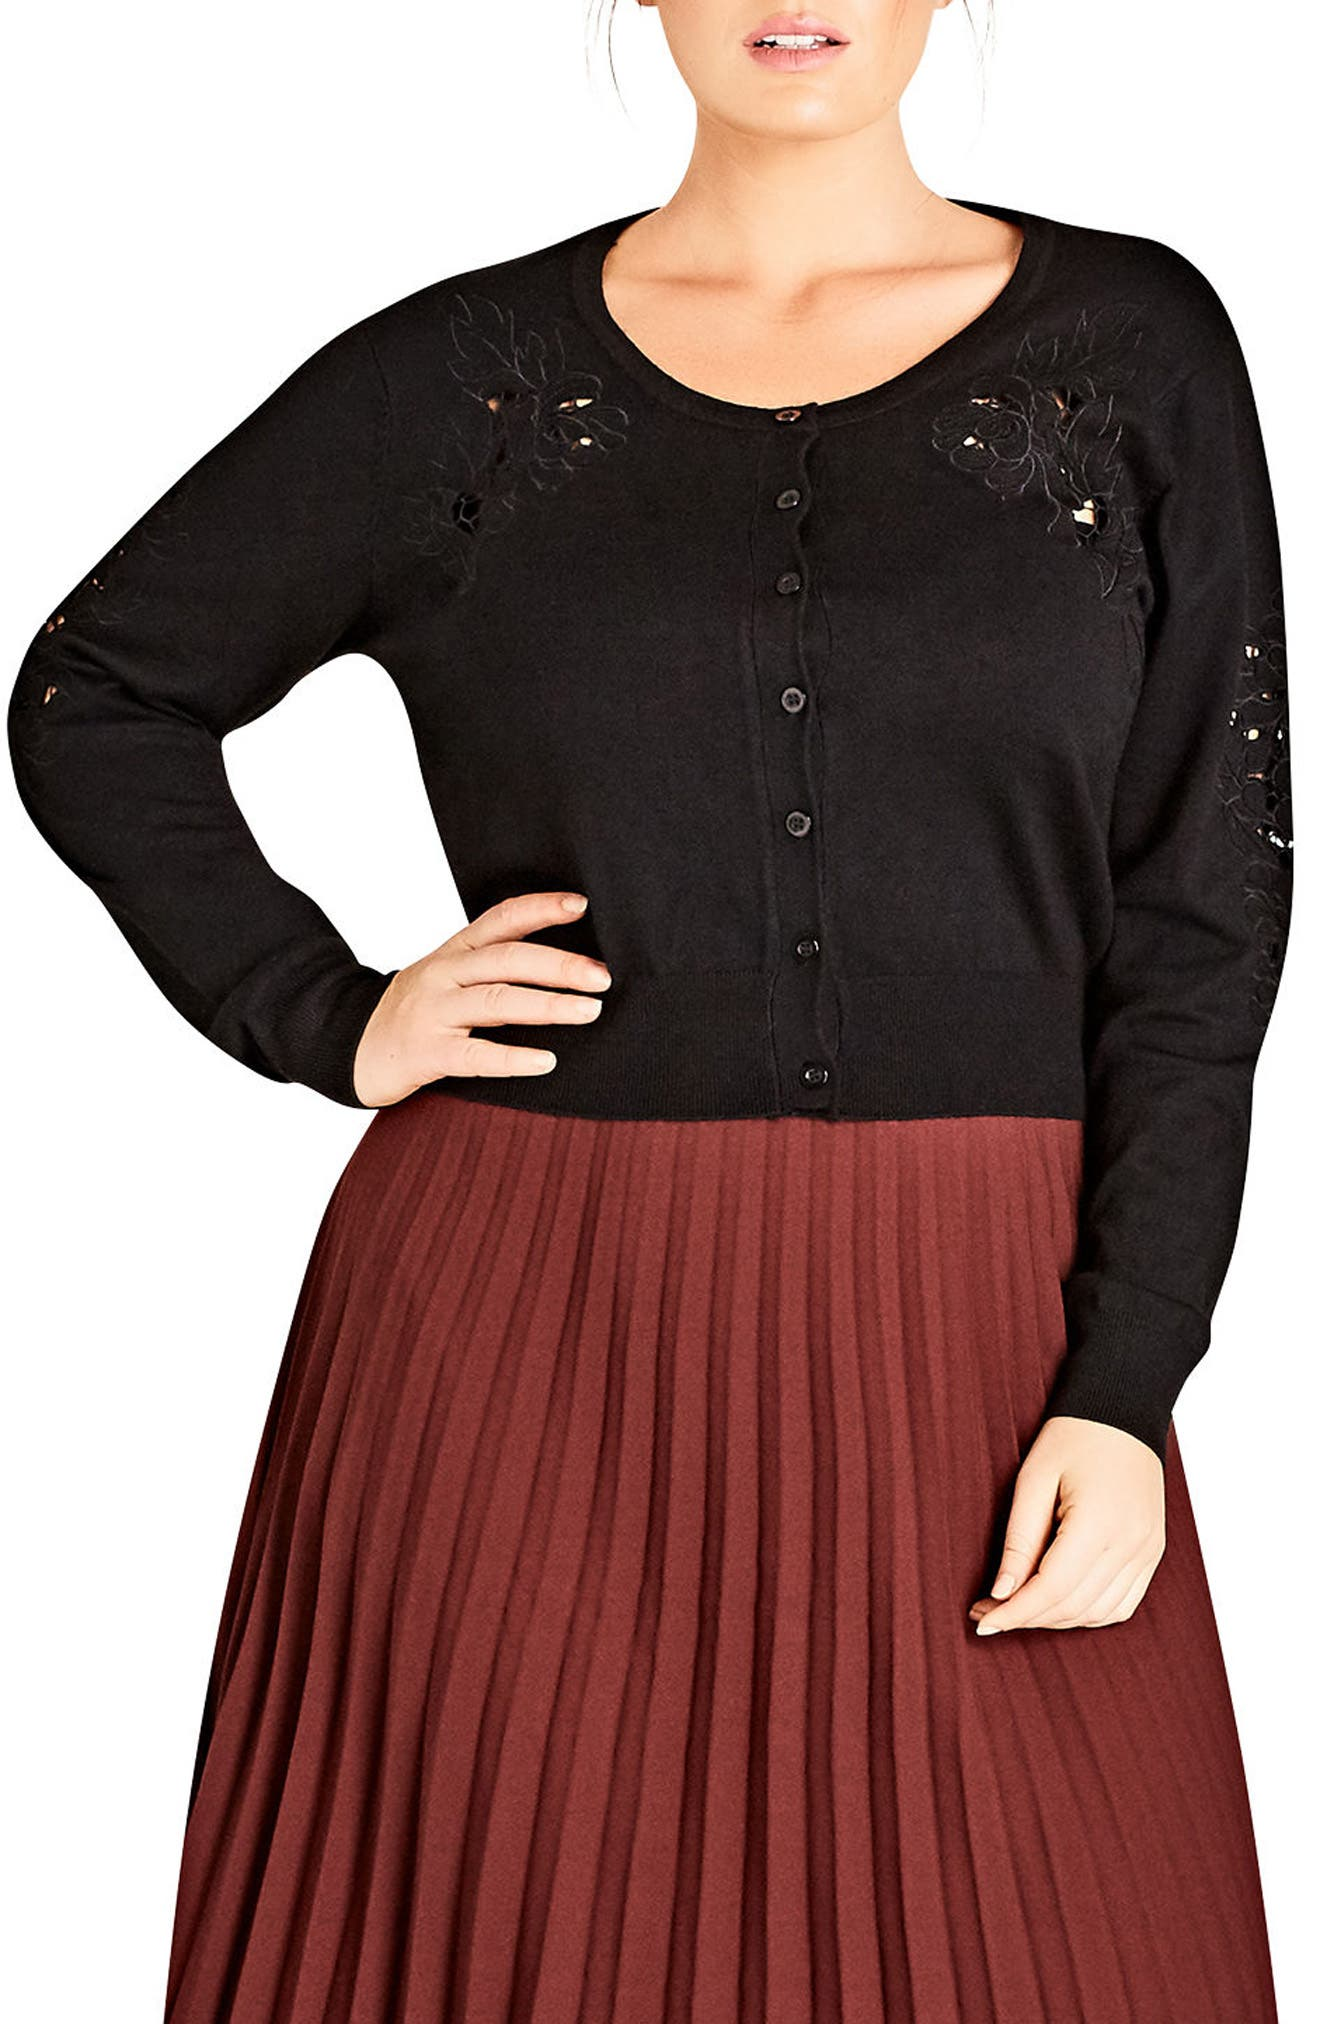 Main Image - City Chic Sweet Appliqué Crop Cardigan (Plus Size)